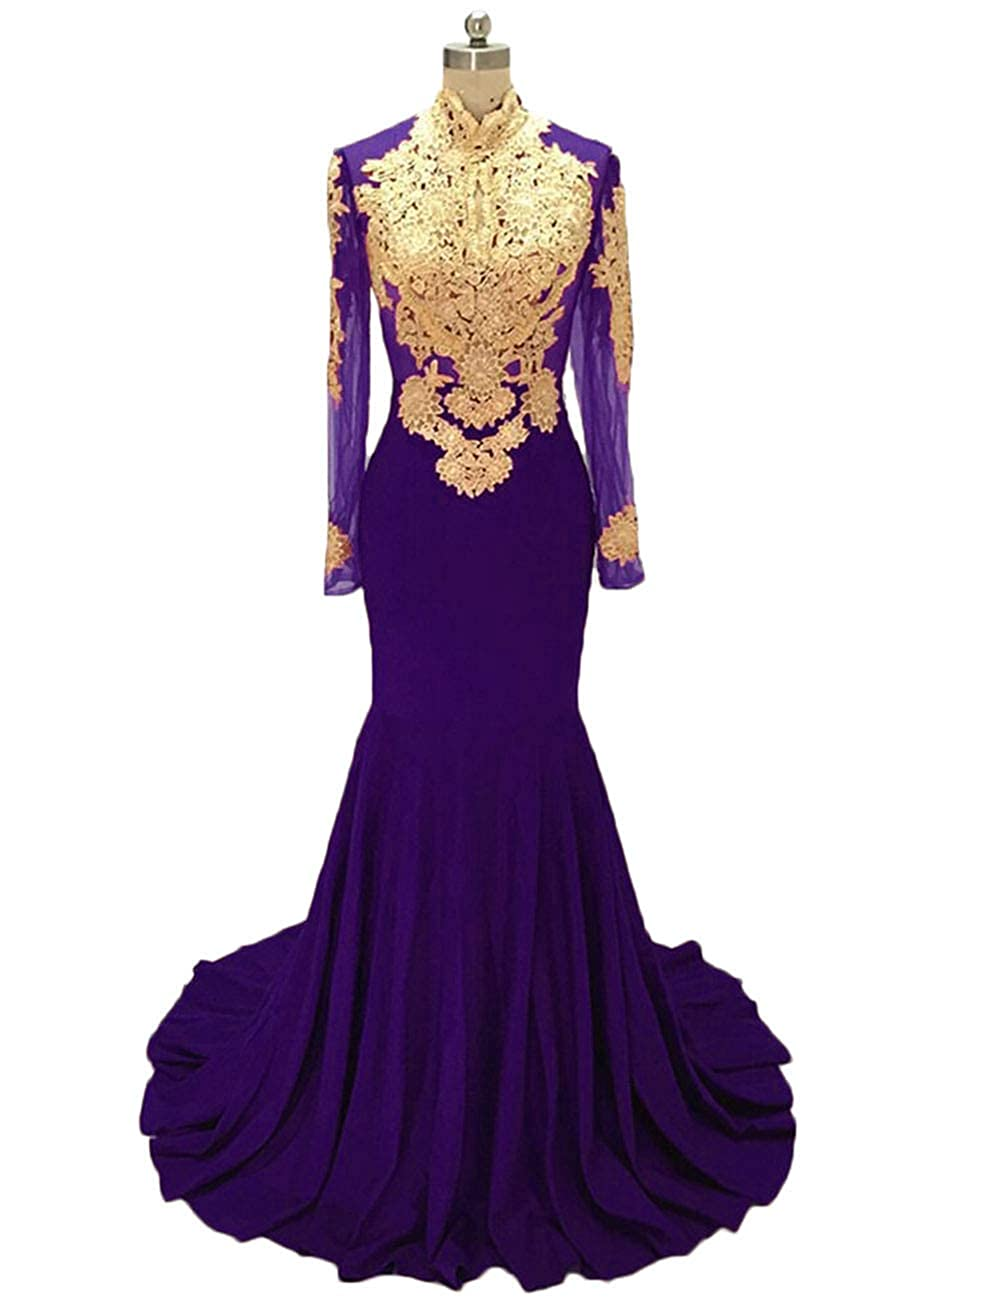 Grape alilith.Z Sexy Mermaid Prom Dresses gold Appliques Long Sleeve Formal Evening Dresses Party Gowns for Women